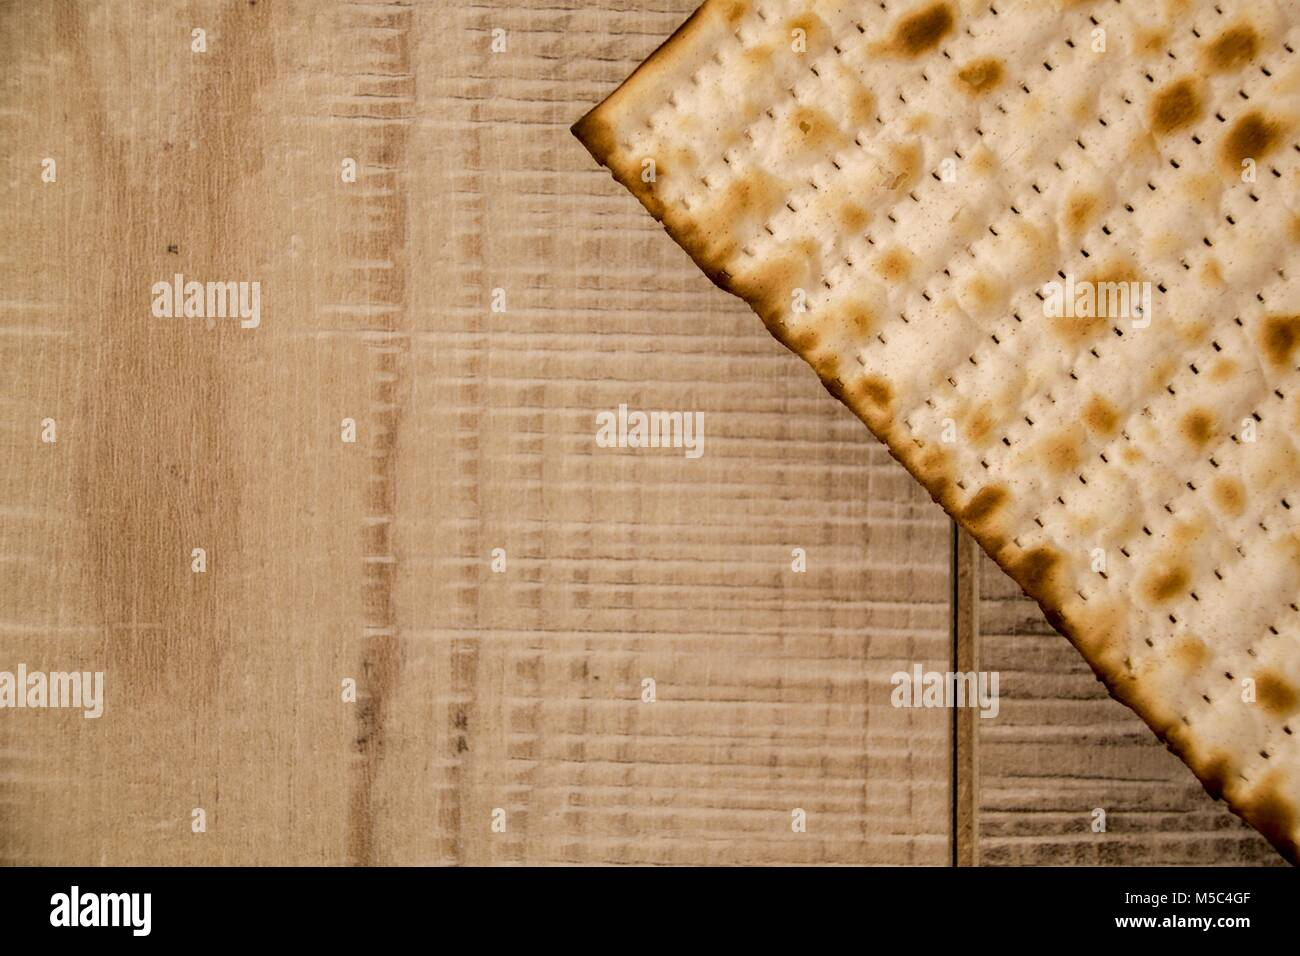 Passover background. Jewish traditional Matzah top view on rustic wooden background with copy-space. Israel national - Stock Image